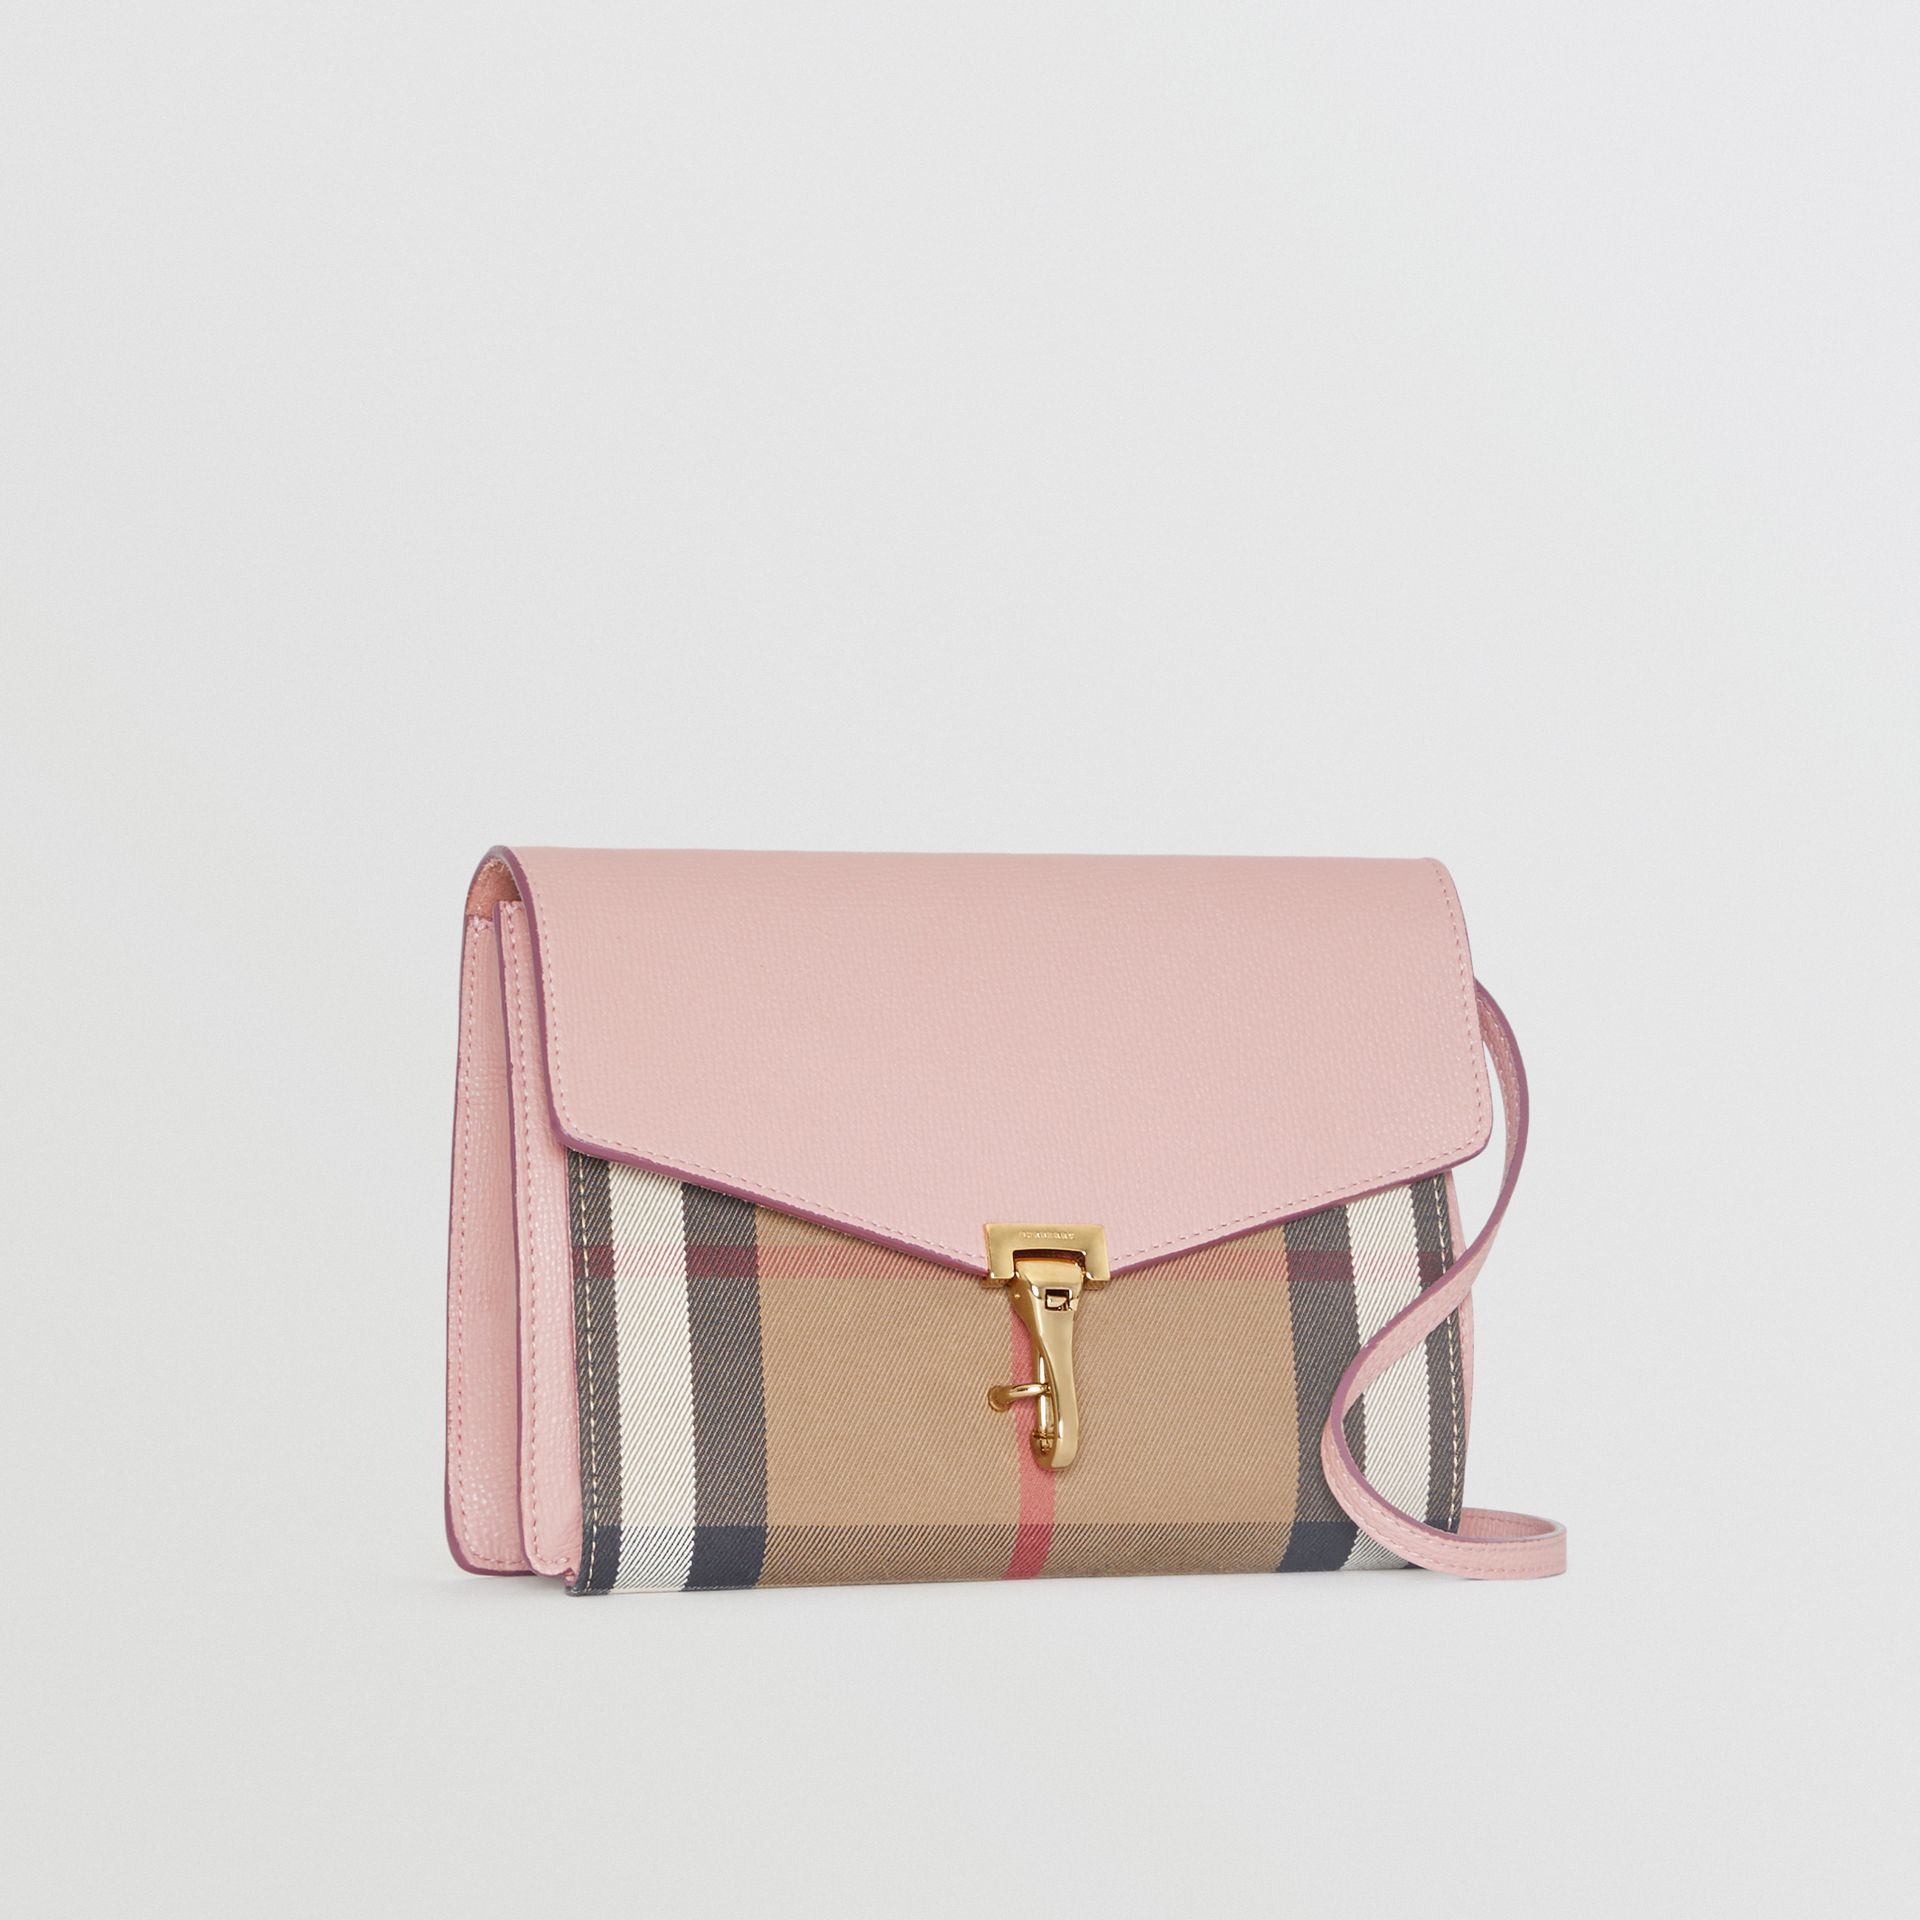 Small Leather and House Check Crossbody Bag in Pale Orchid - Women | Burberry Australia - gallery image 6